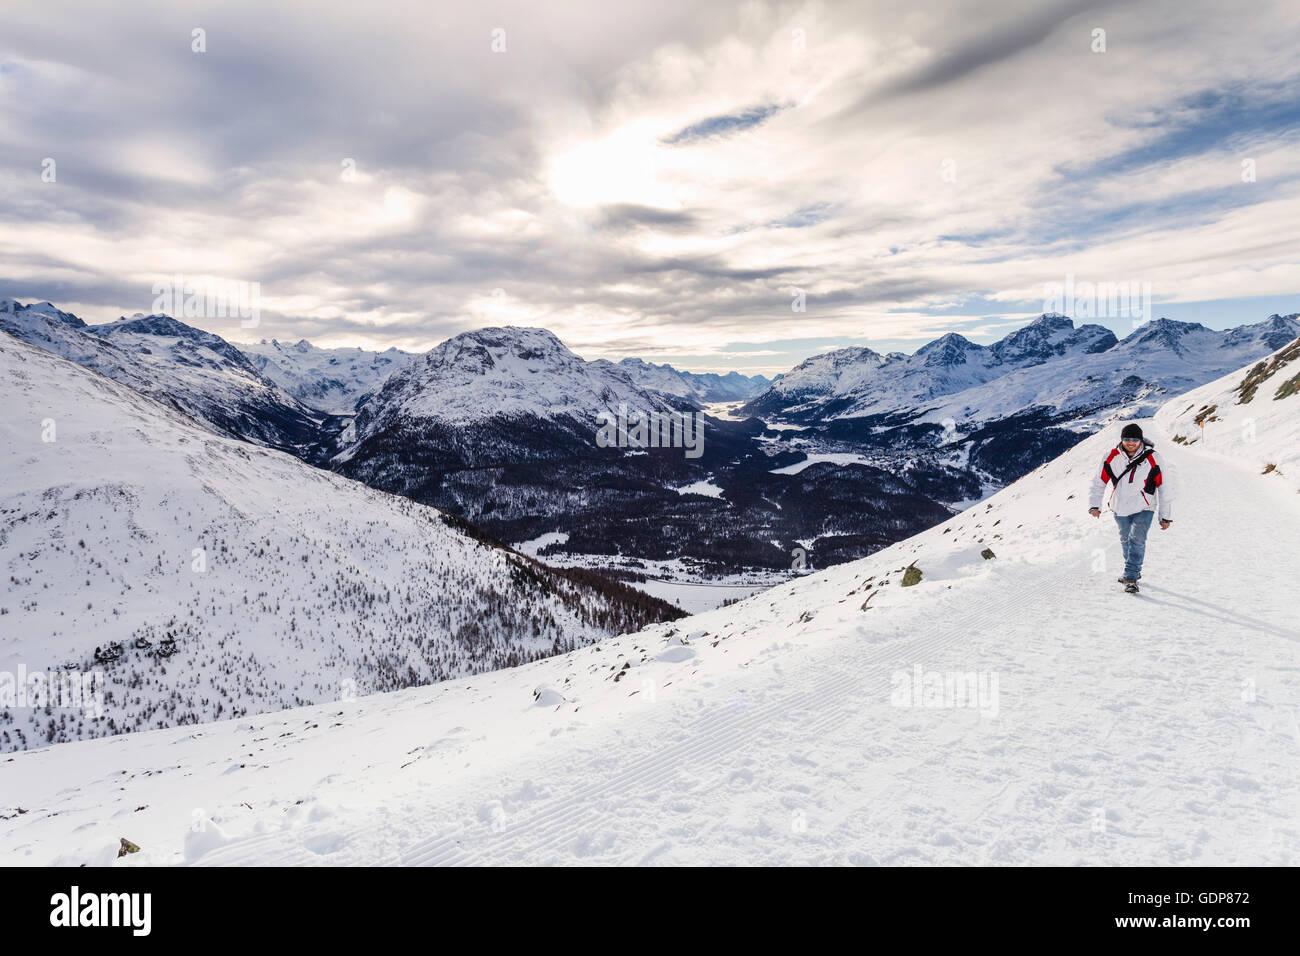 Man walking on snow covered mountain, rear view, Engadine, Switzerland - Stock Image